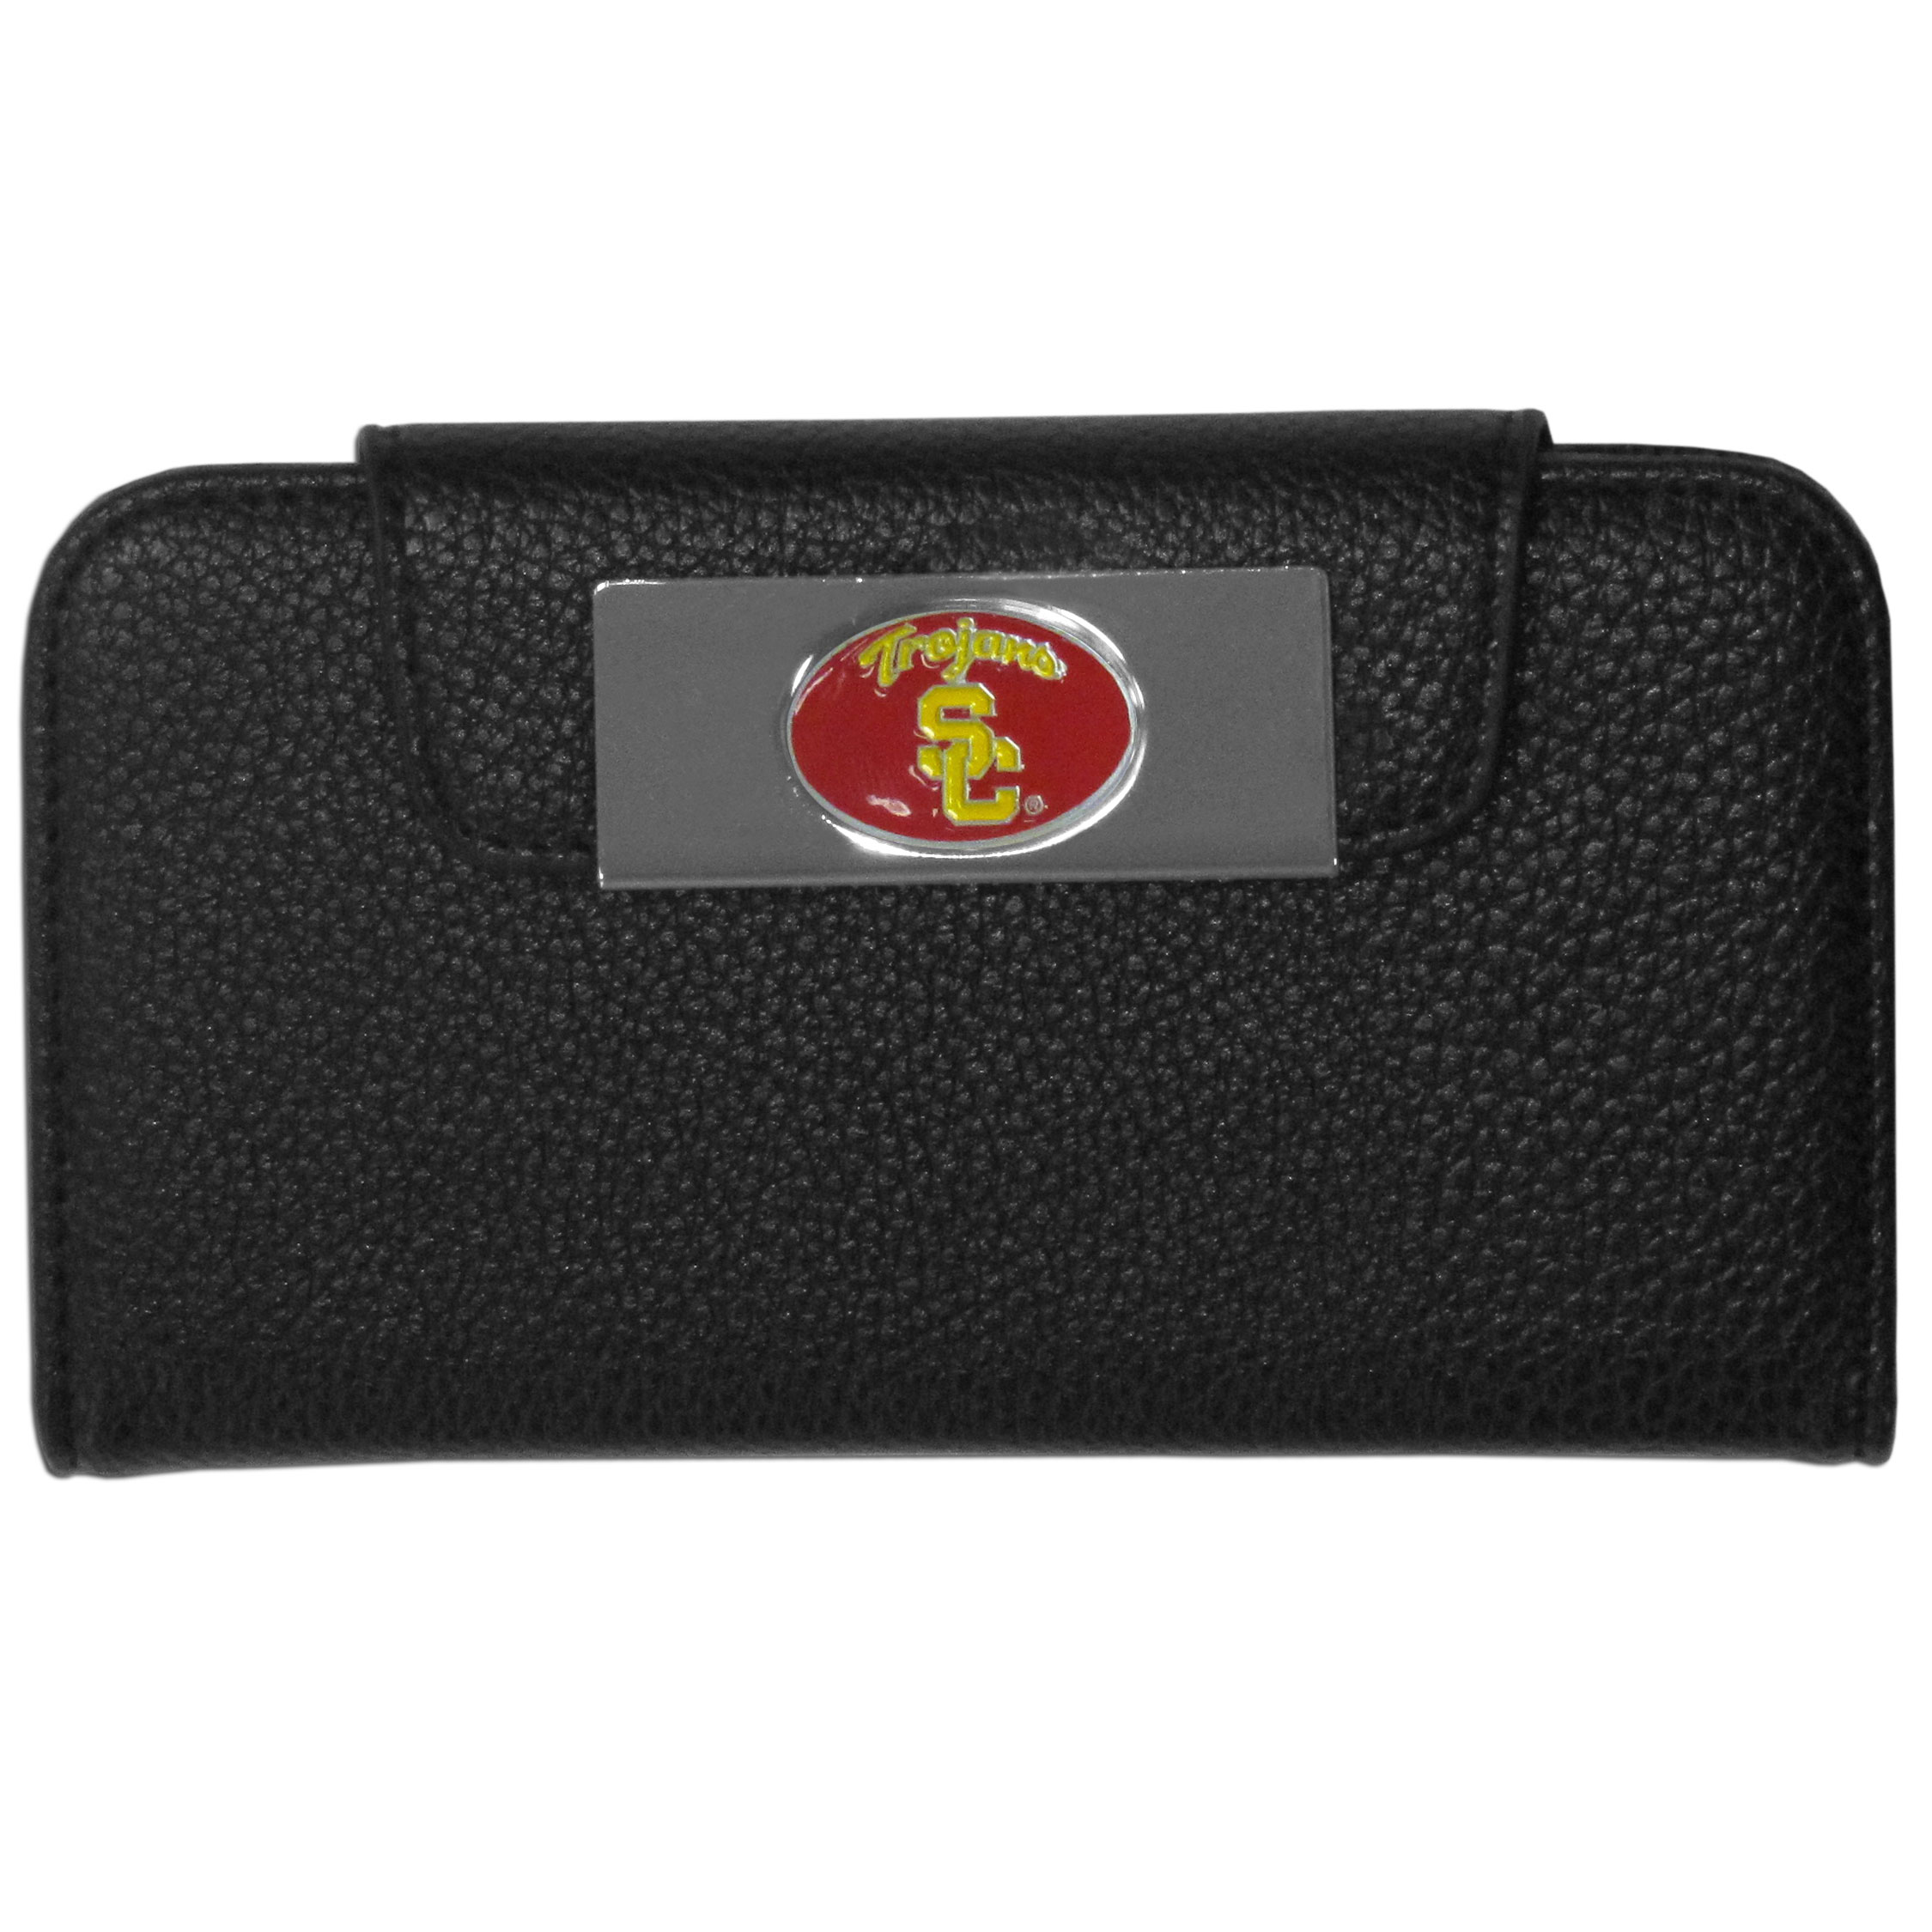 USC Trojans Samsung Galaxy S4 Wallet Case - This new & wildly popular case is ideal for those who like to travel light! The stylish case has an inner hard shell that securely holds your phone while allowing complete access to the phone's functionality. The flip cover has slots for credit cards, business cards and identification. The magnetic flip cover has a metal USC Trojans emblem on a high polish chrome backing. Fits the Samsung Galaxy S4